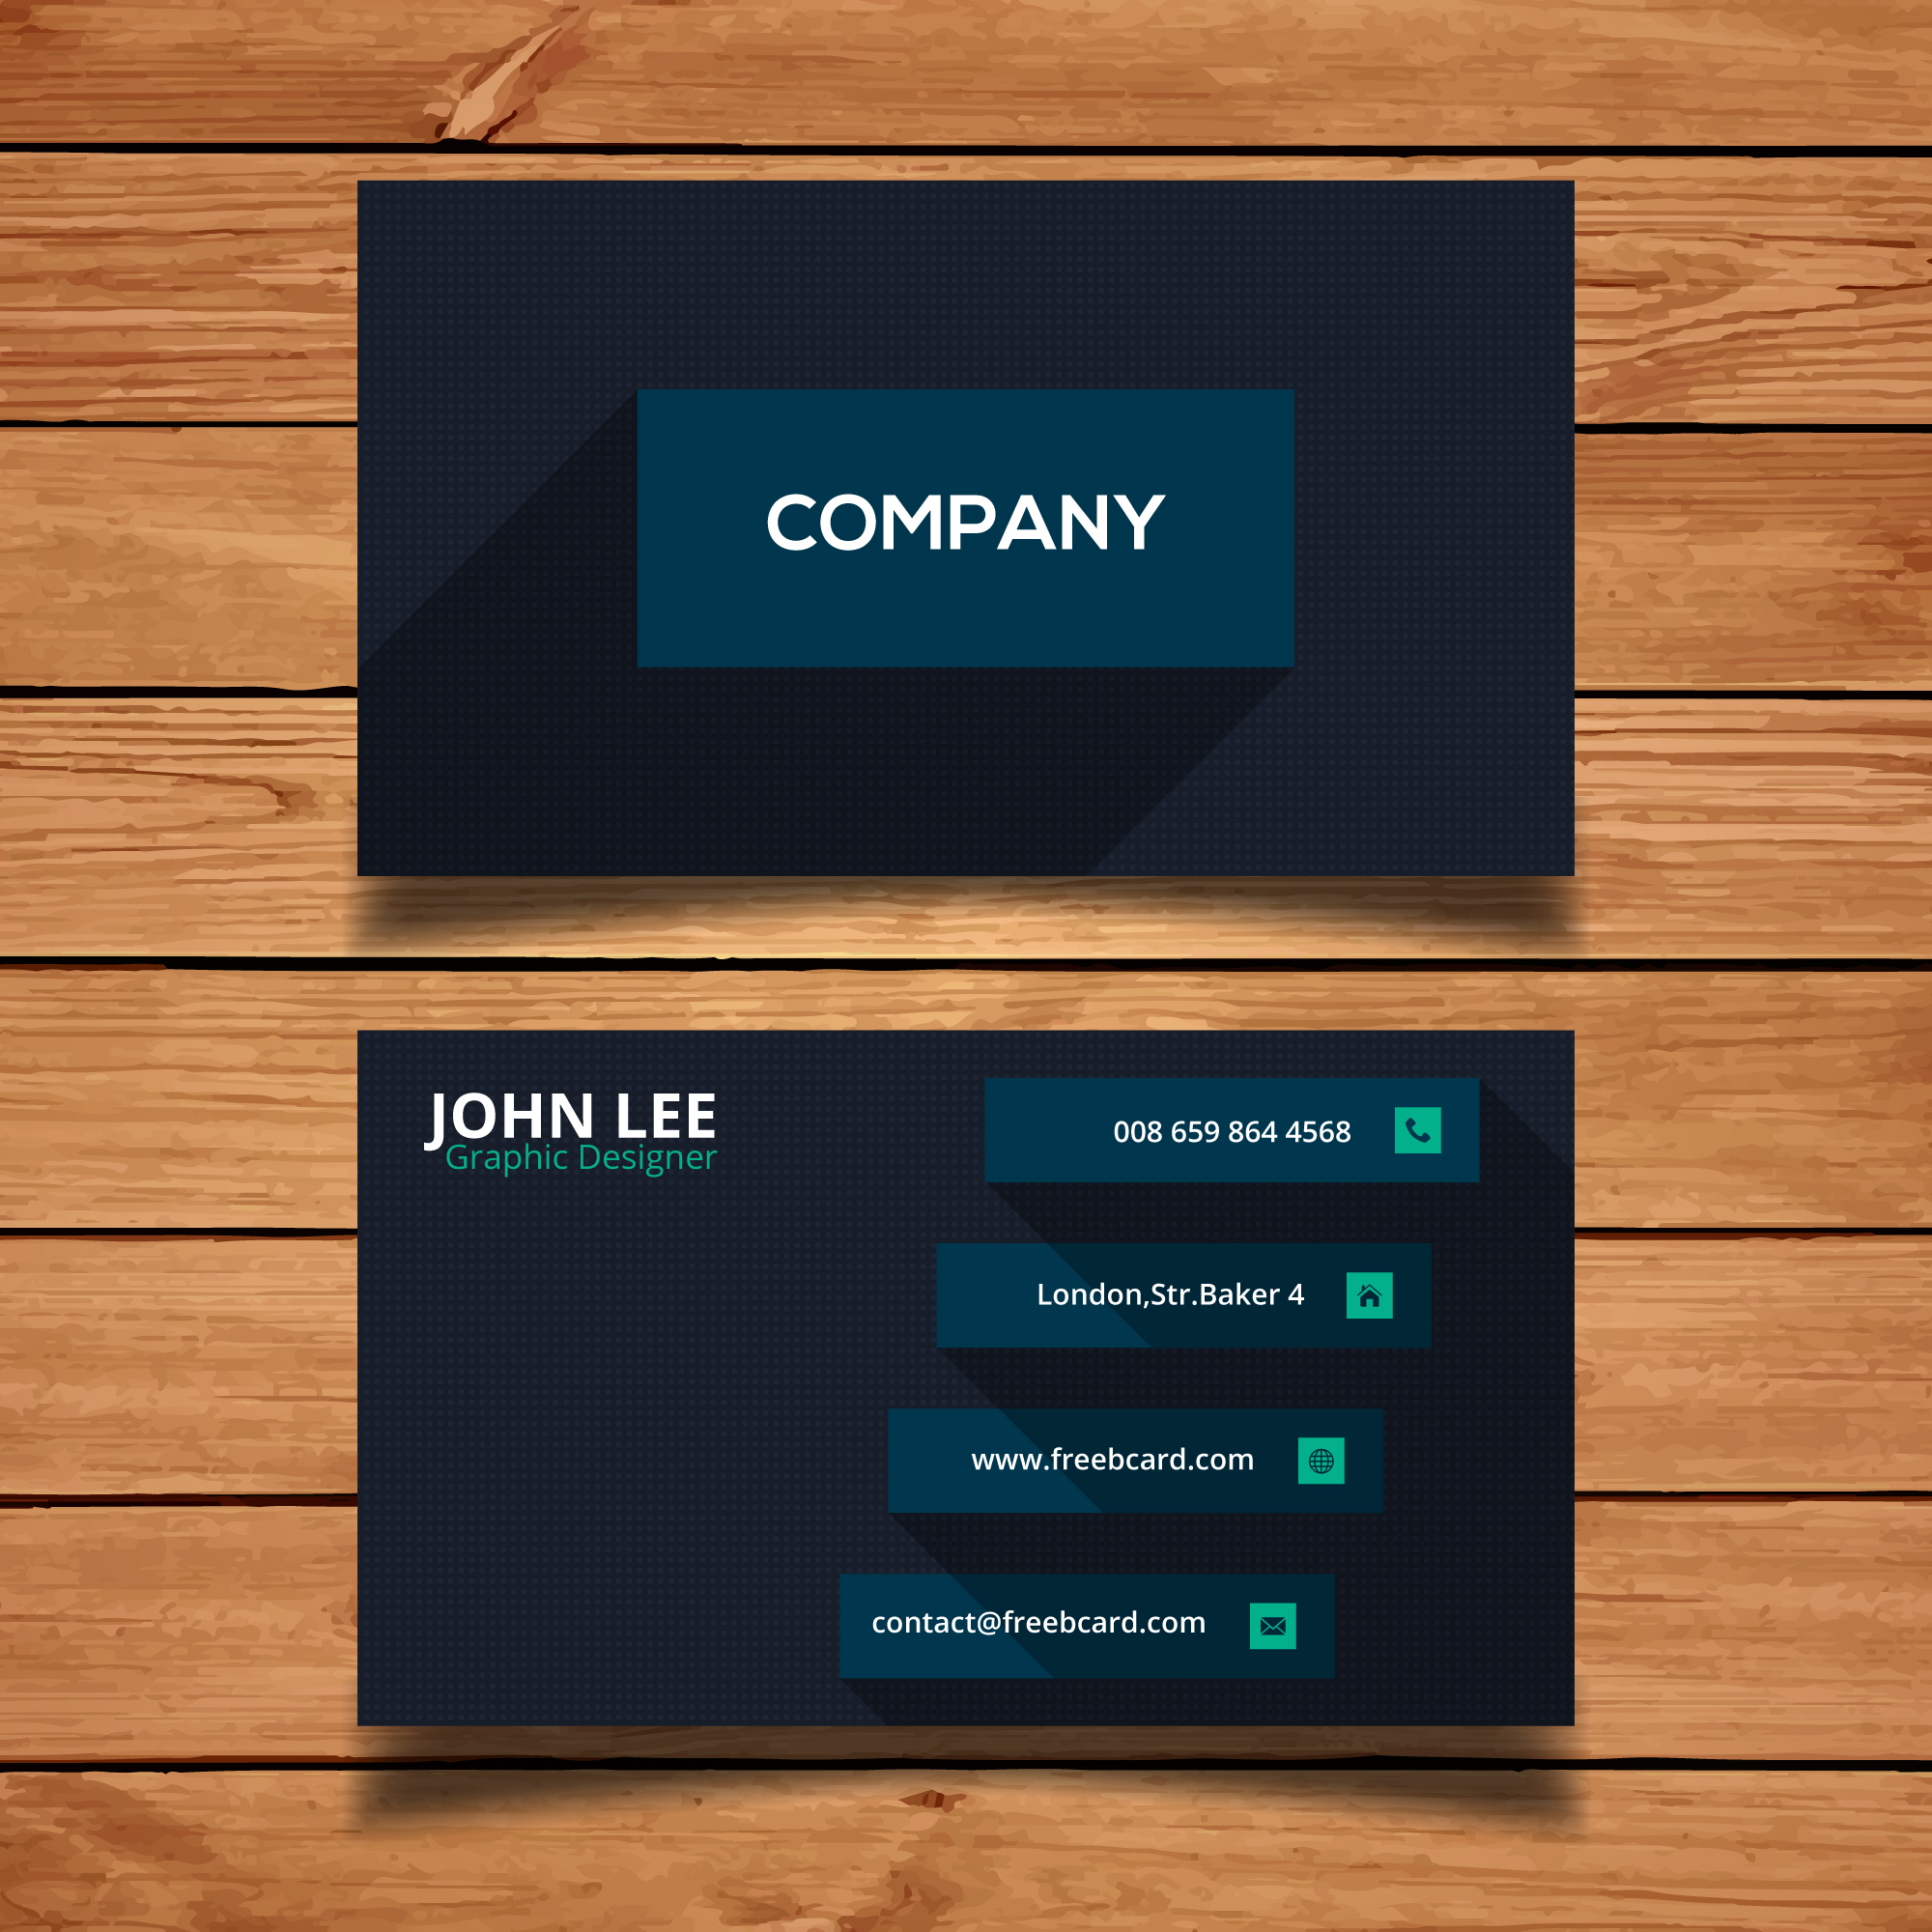 Dark corporate card